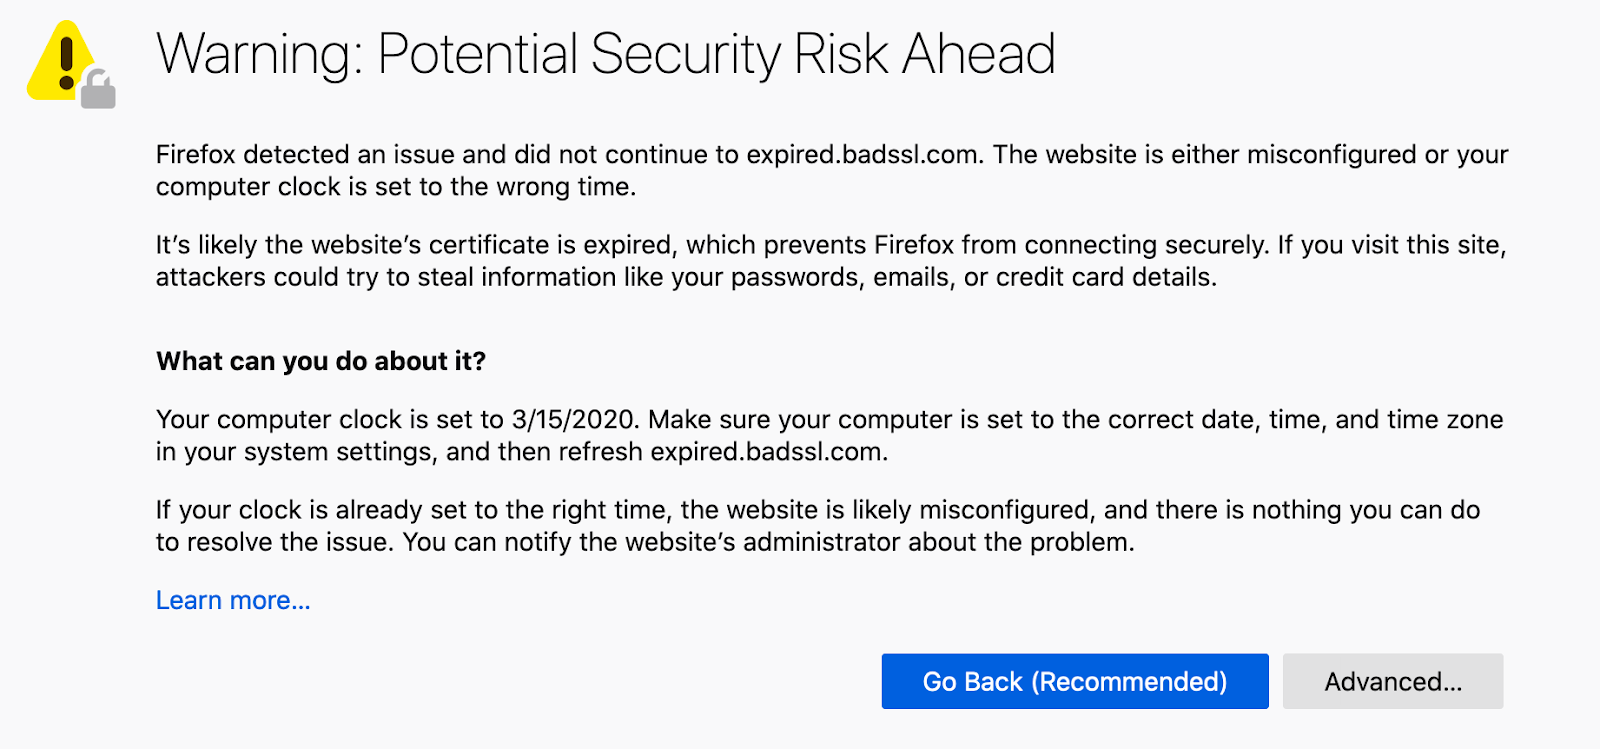 Certification expiration warning in Firefox